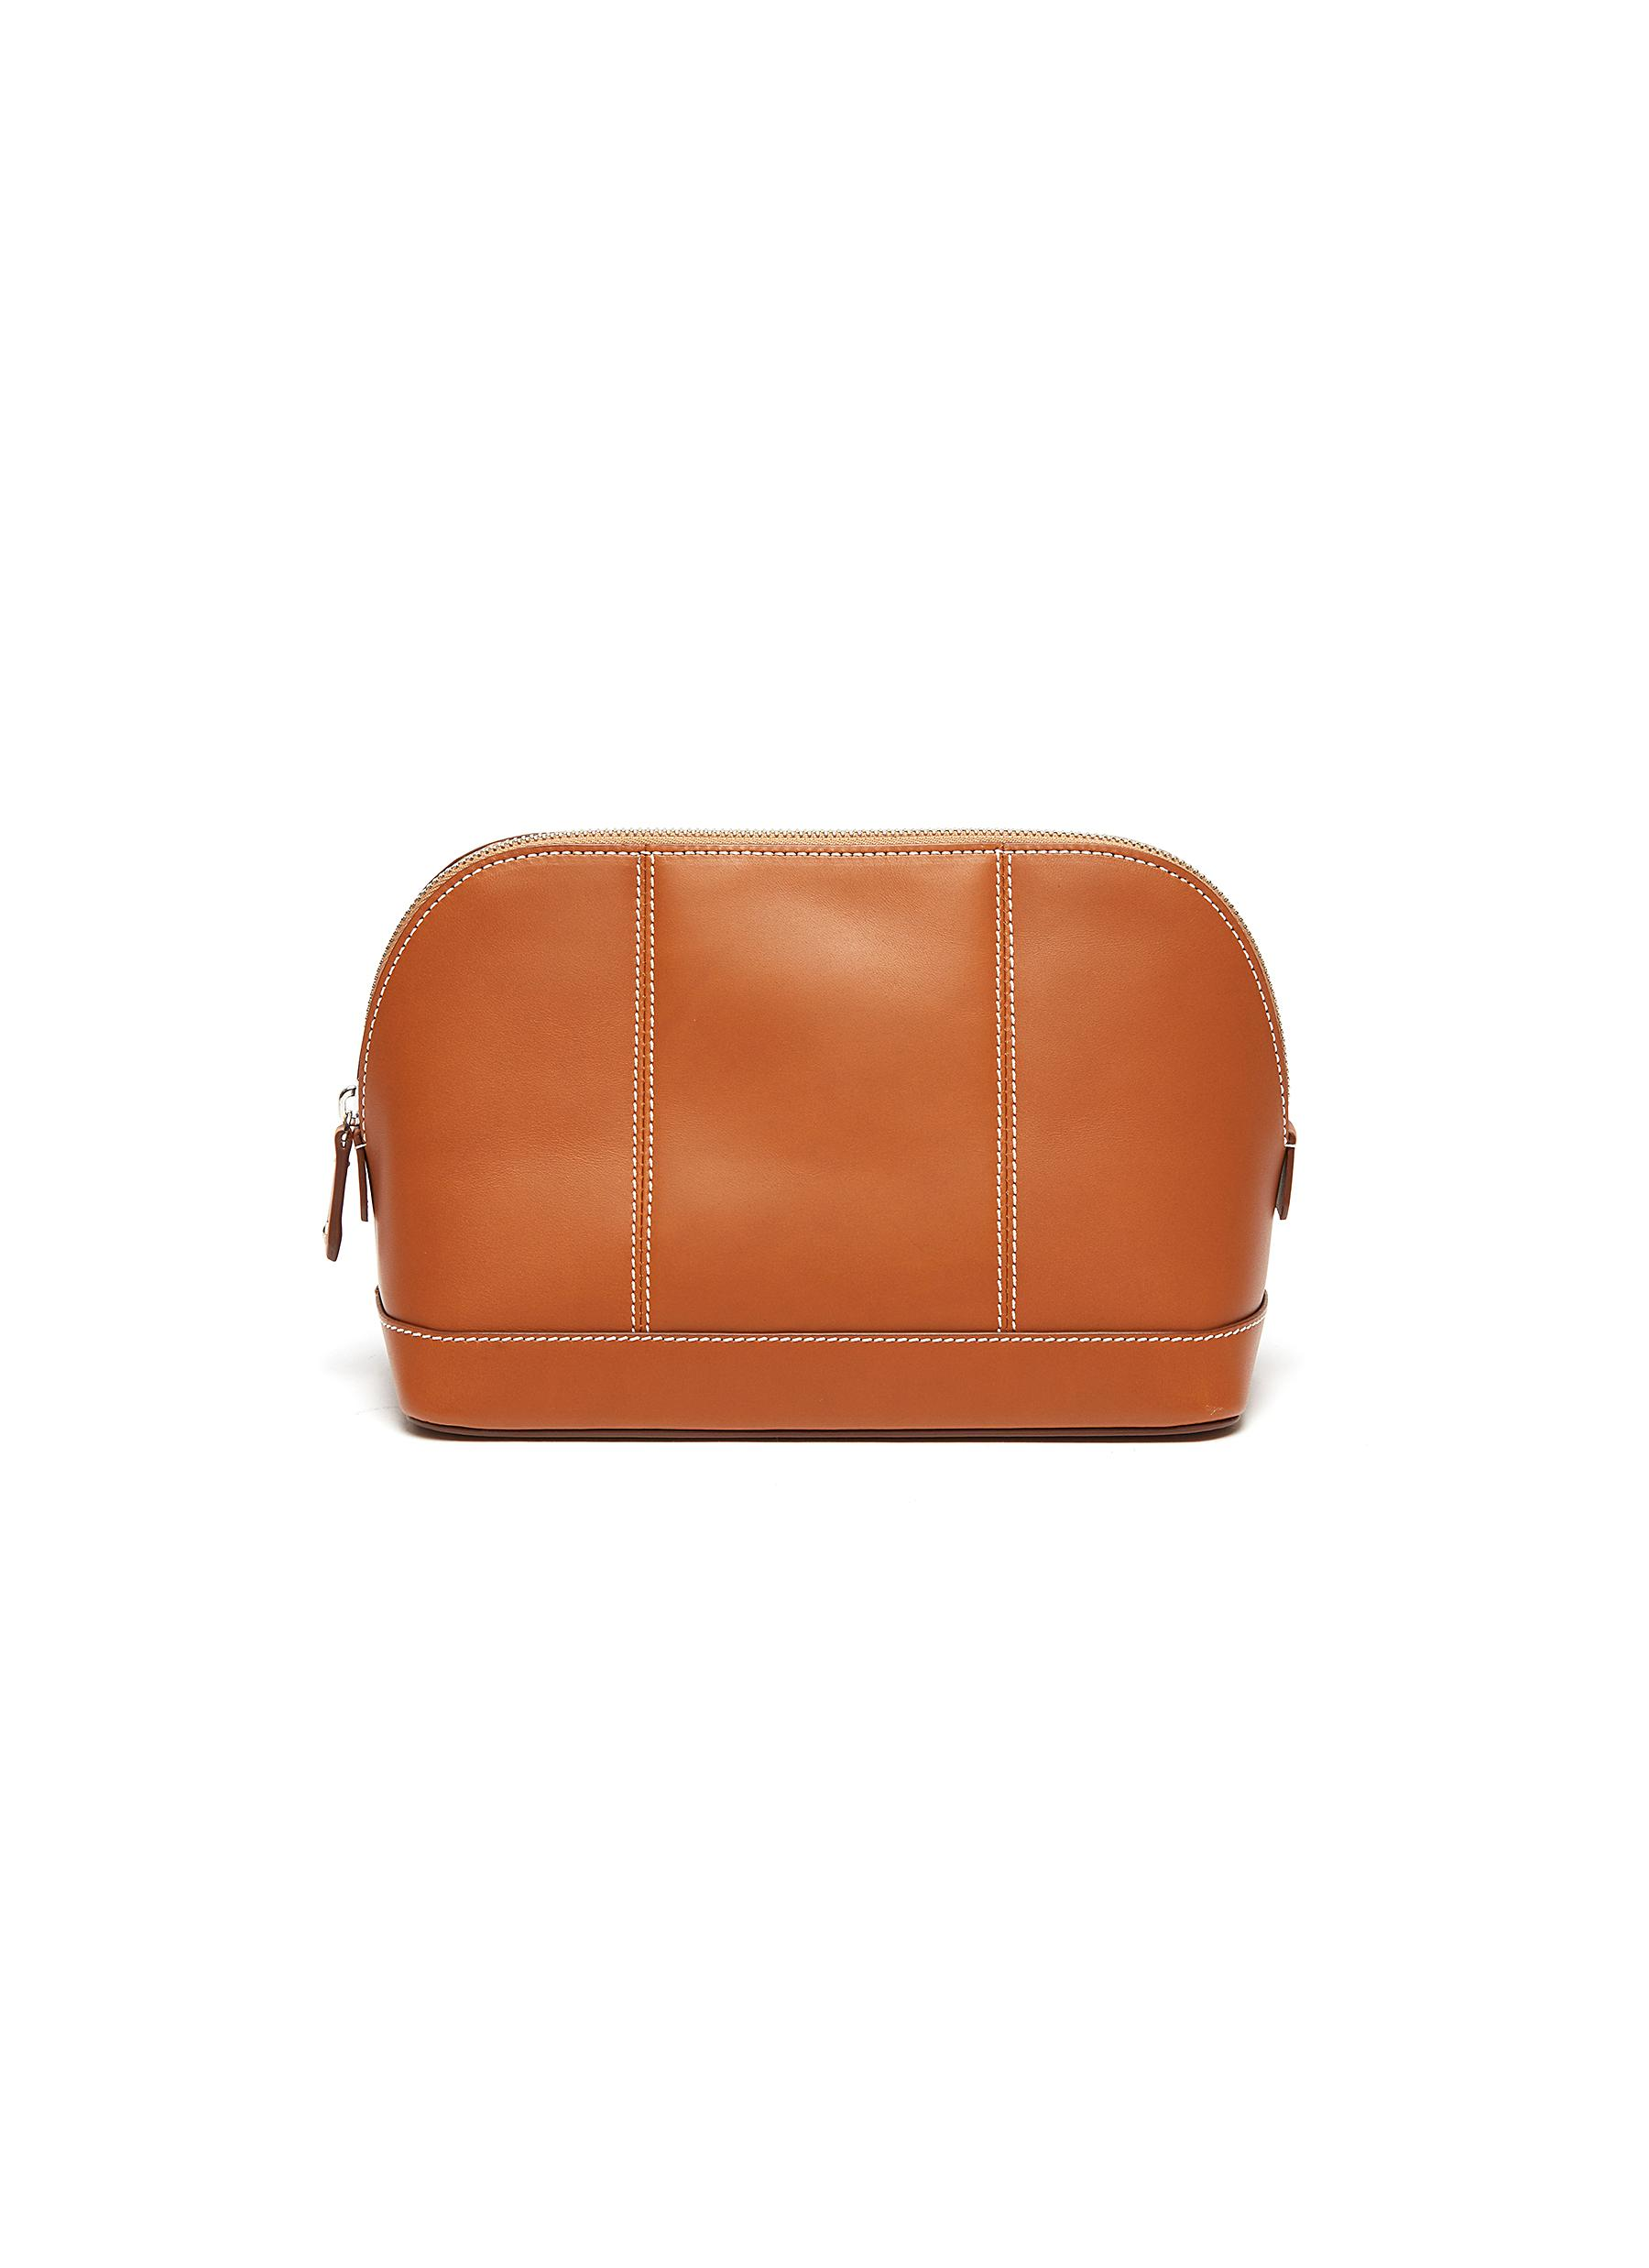 Small leather wash bag